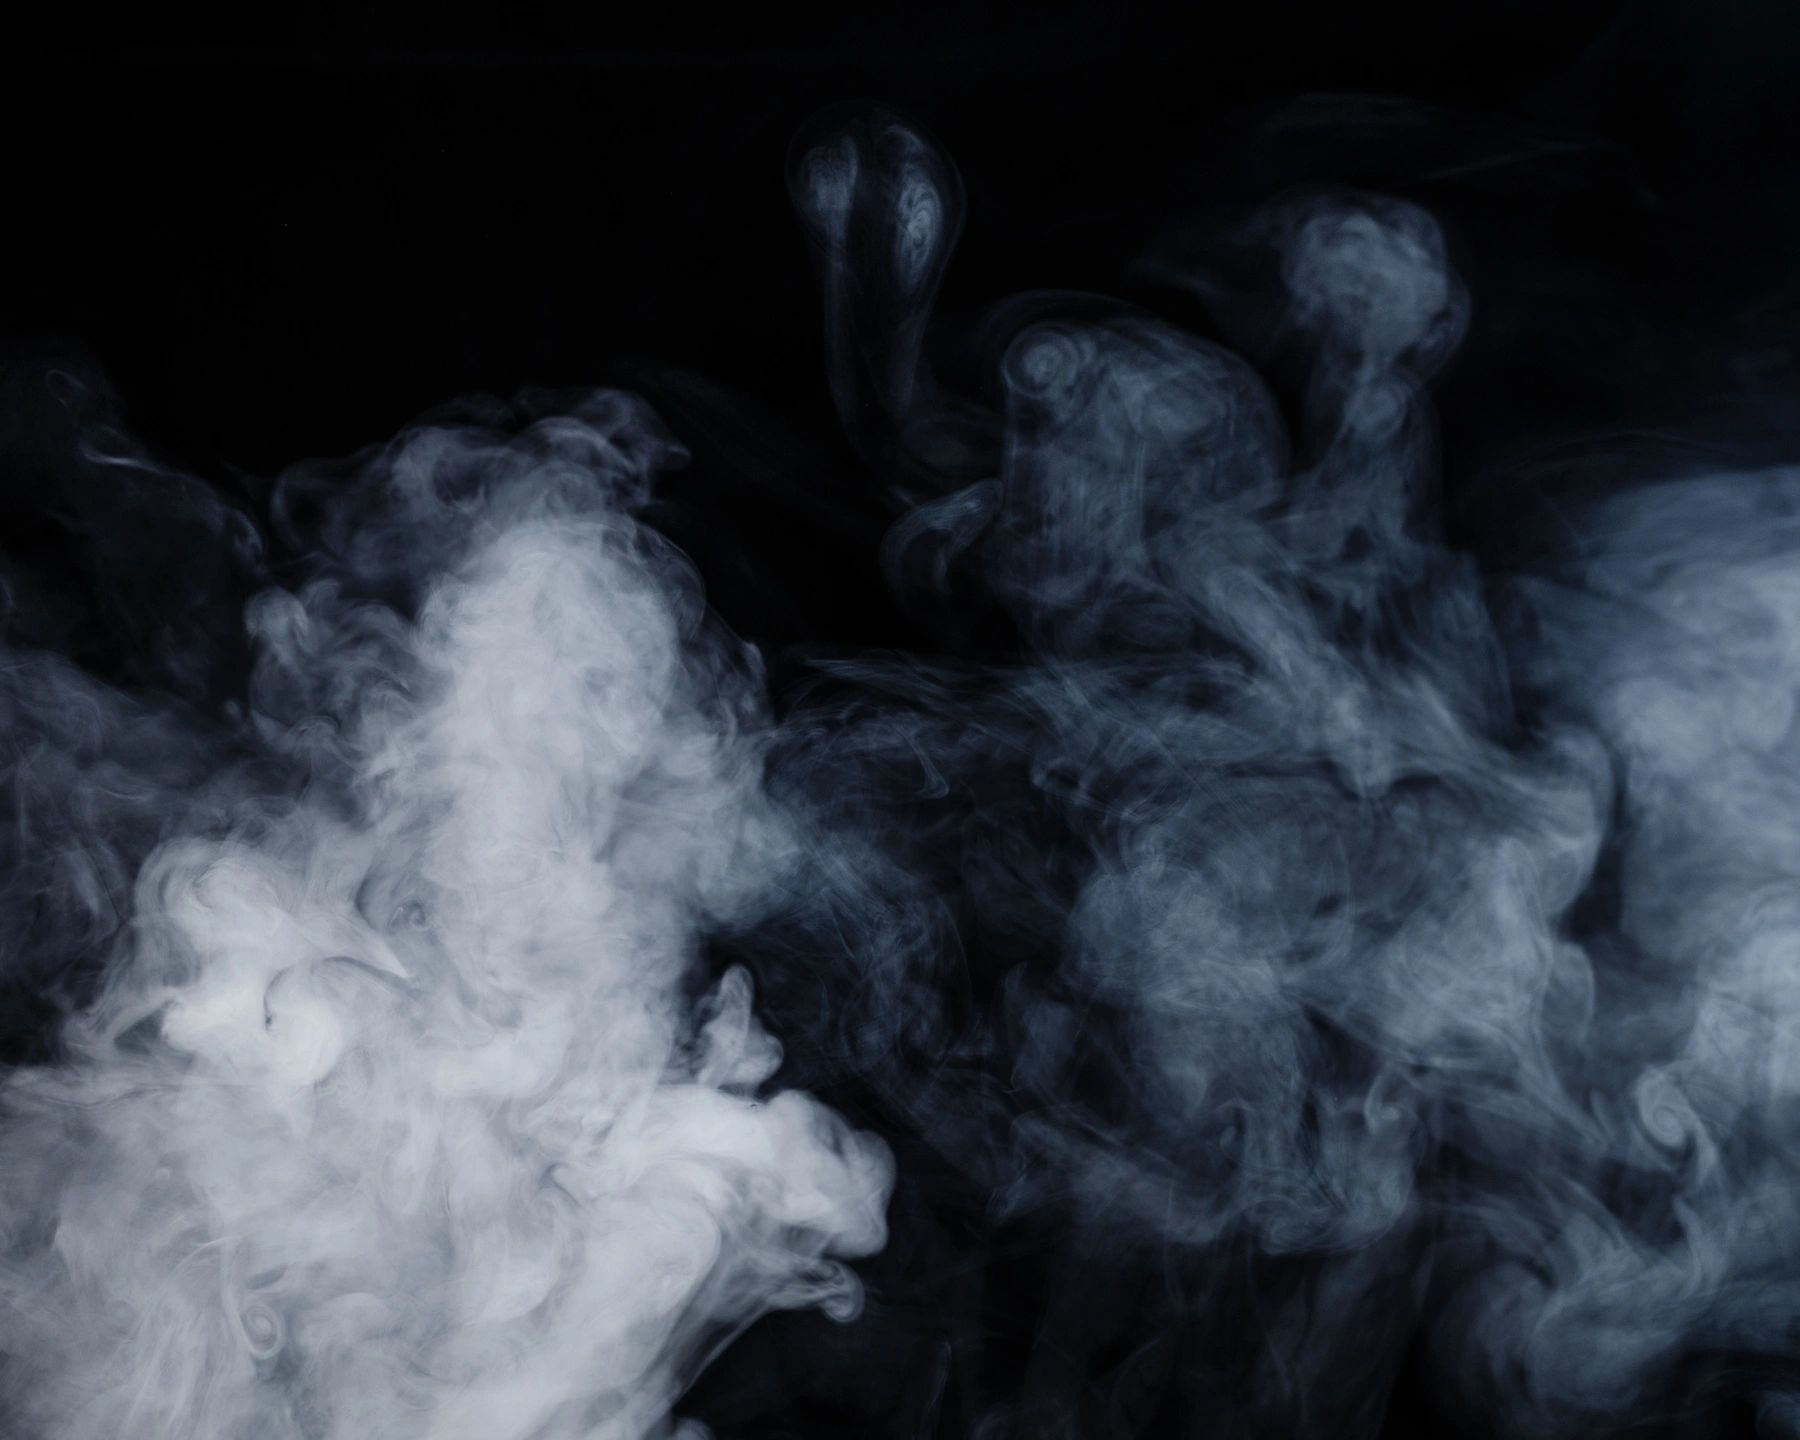 In Wake of Recent Vaping Crisis, Trump Administration Must Enact National Moratorium on THC Vape Products